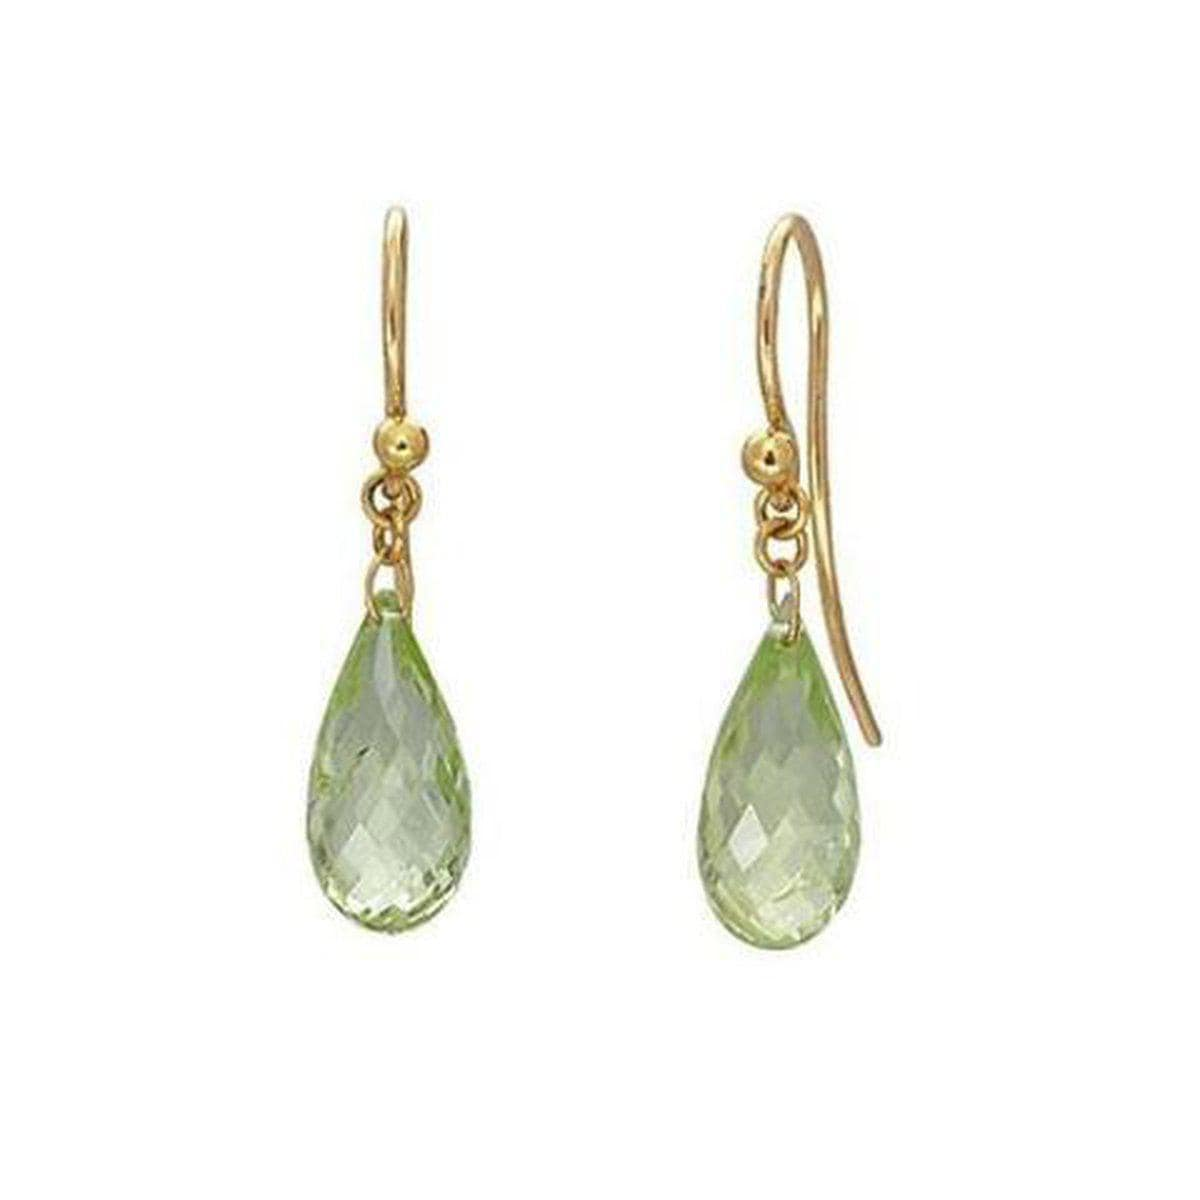 Delicate Hue 24K Gold Peridot Earrings - E-U23447-PD-GURHAN-Renee Taylor Gallery